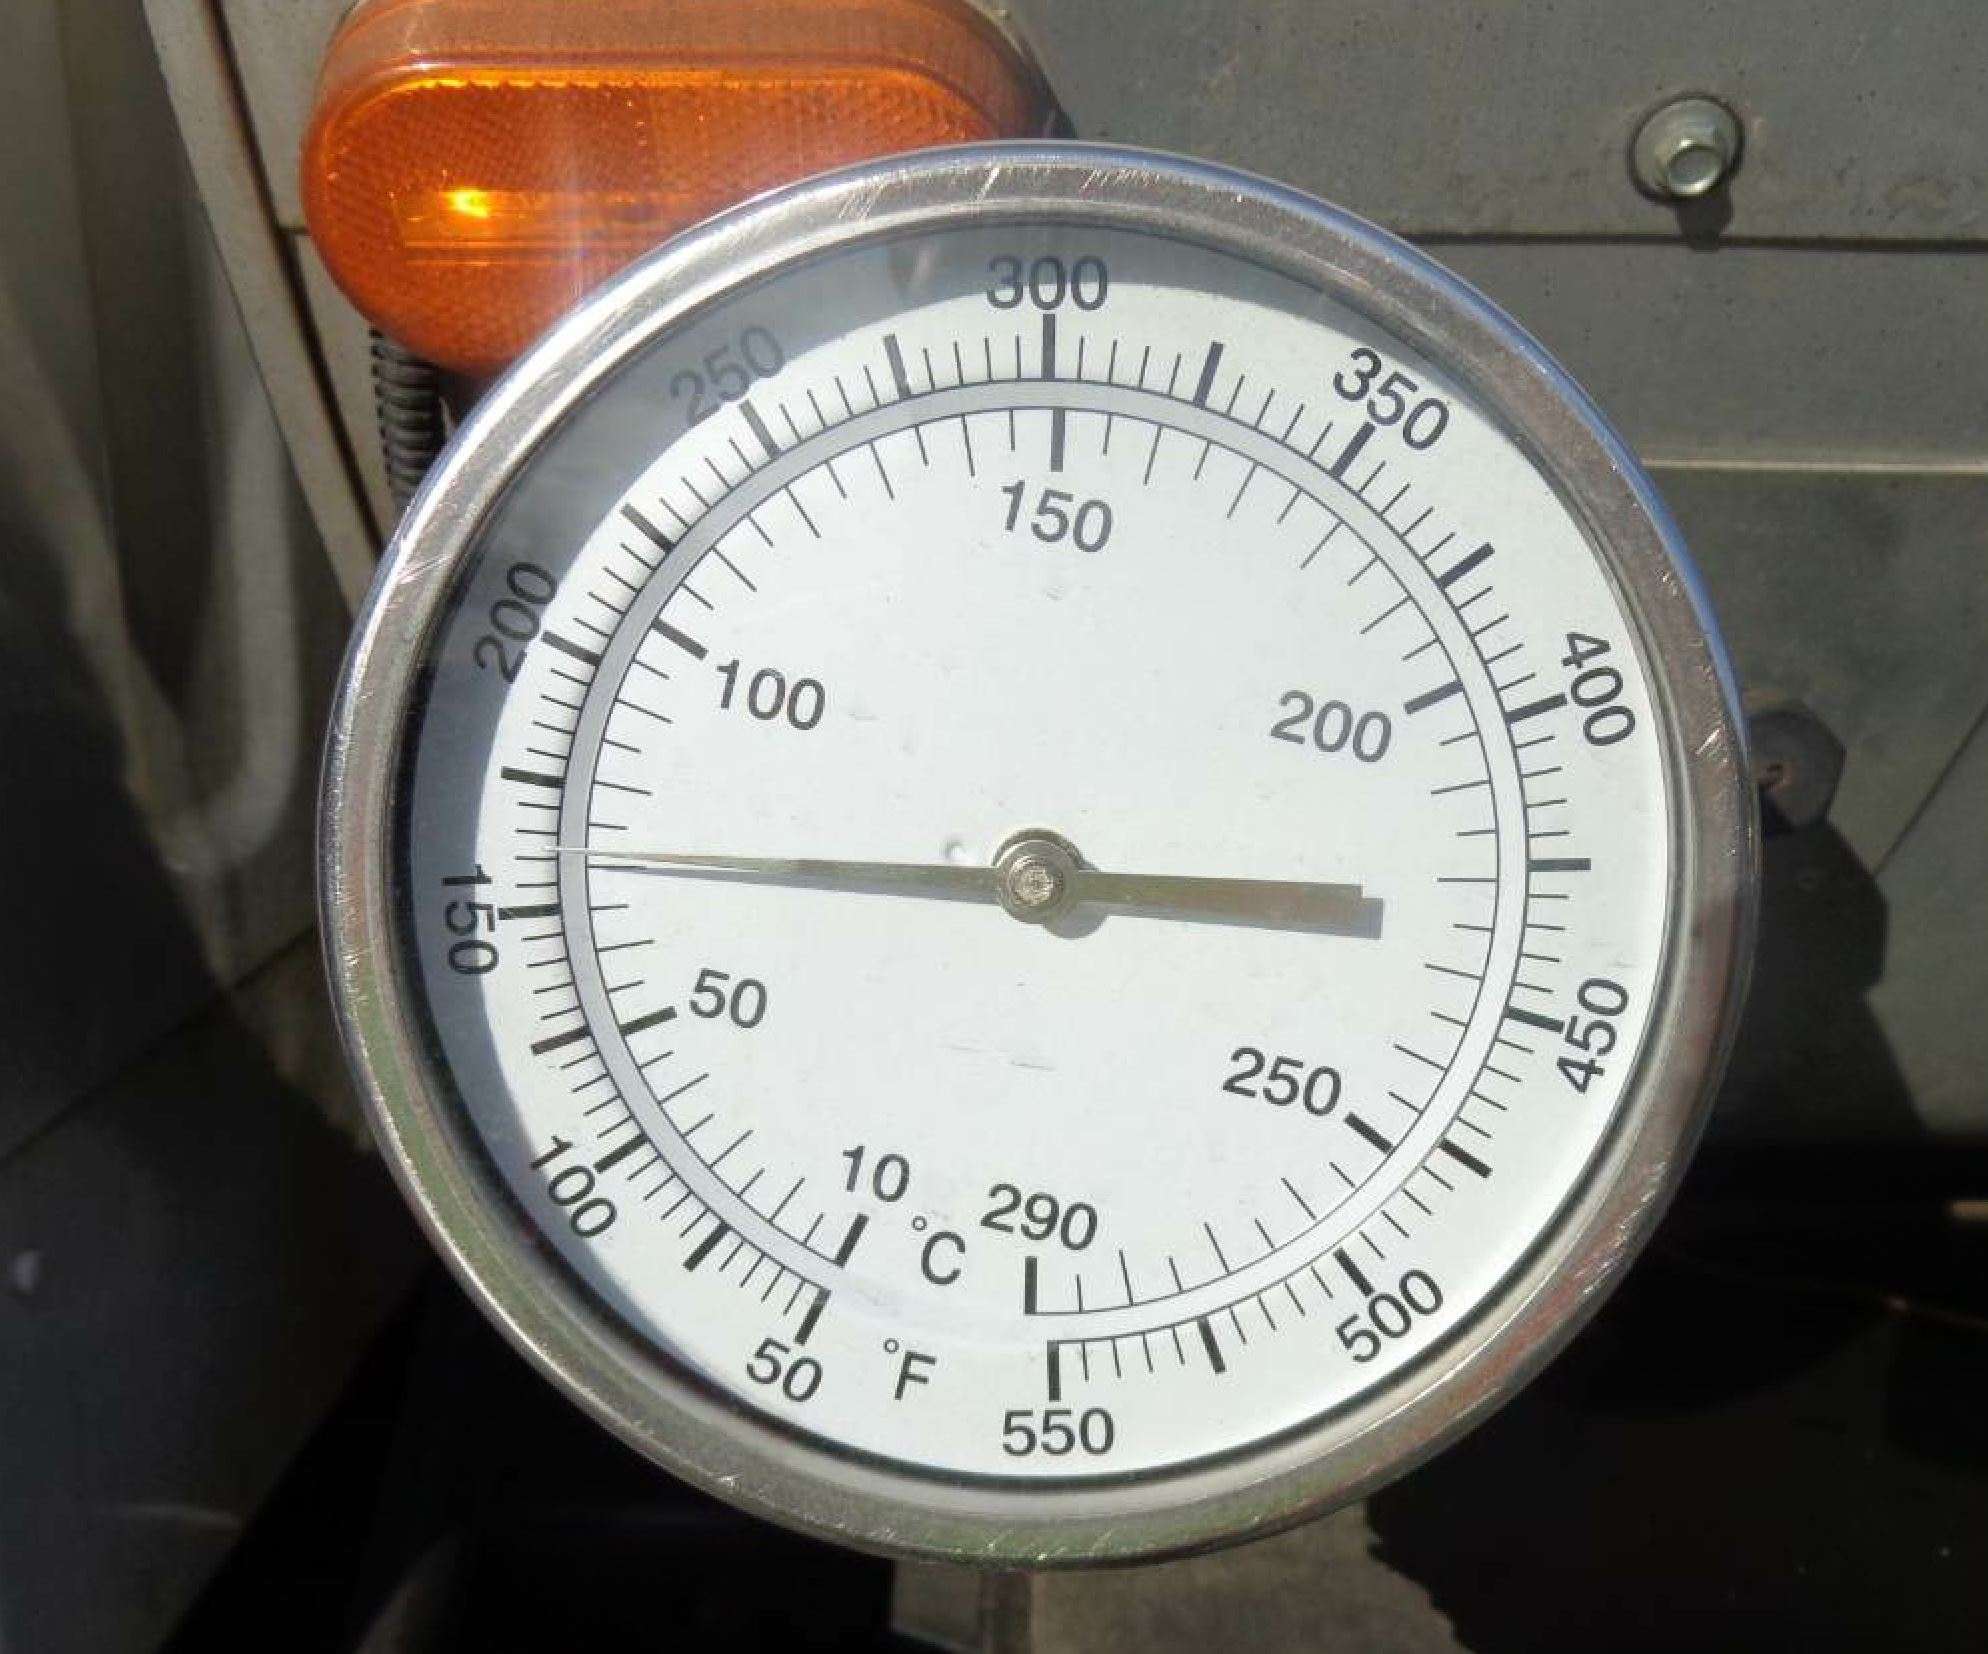 Don't guess at what the temperature might be. Know it. Even the temperature of each individual tire on the pneumatic roller gives you clues to its pressure. The gauge in this photo tells you the temperature of the material in the tack wagon. Each step of the paving process has a temperature you'll want to know. Photo courtesy John Ball of Top Quality Paving.